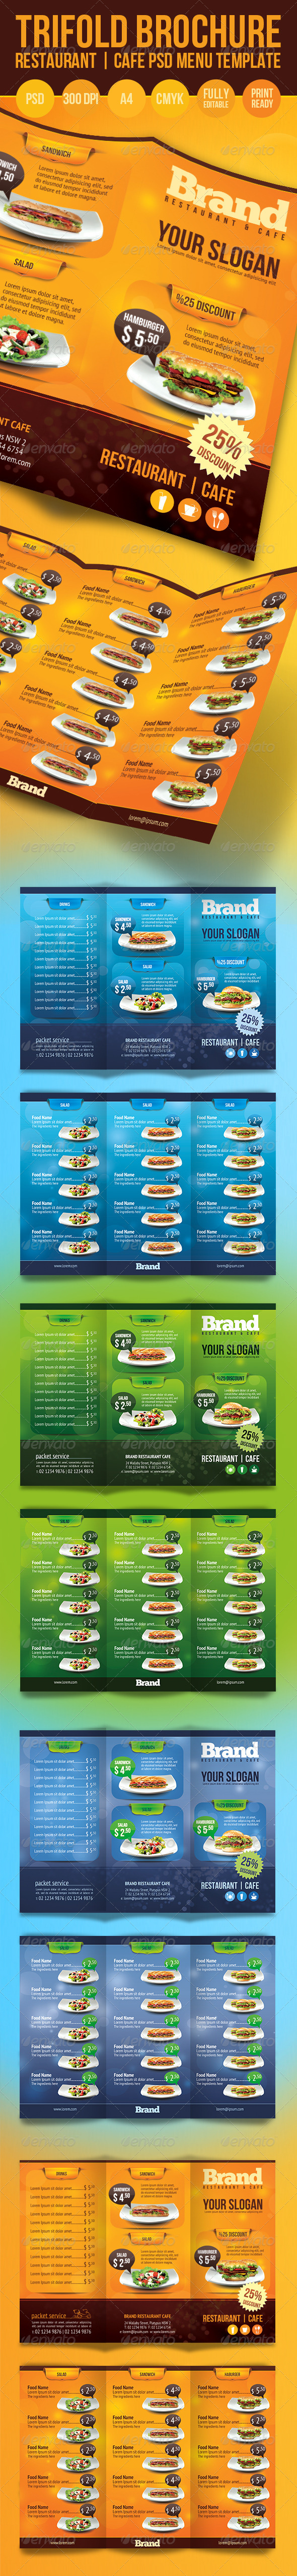 Trifold Brochure Restaurant Cafe Menu PSD Template - Food Menus Print Templates